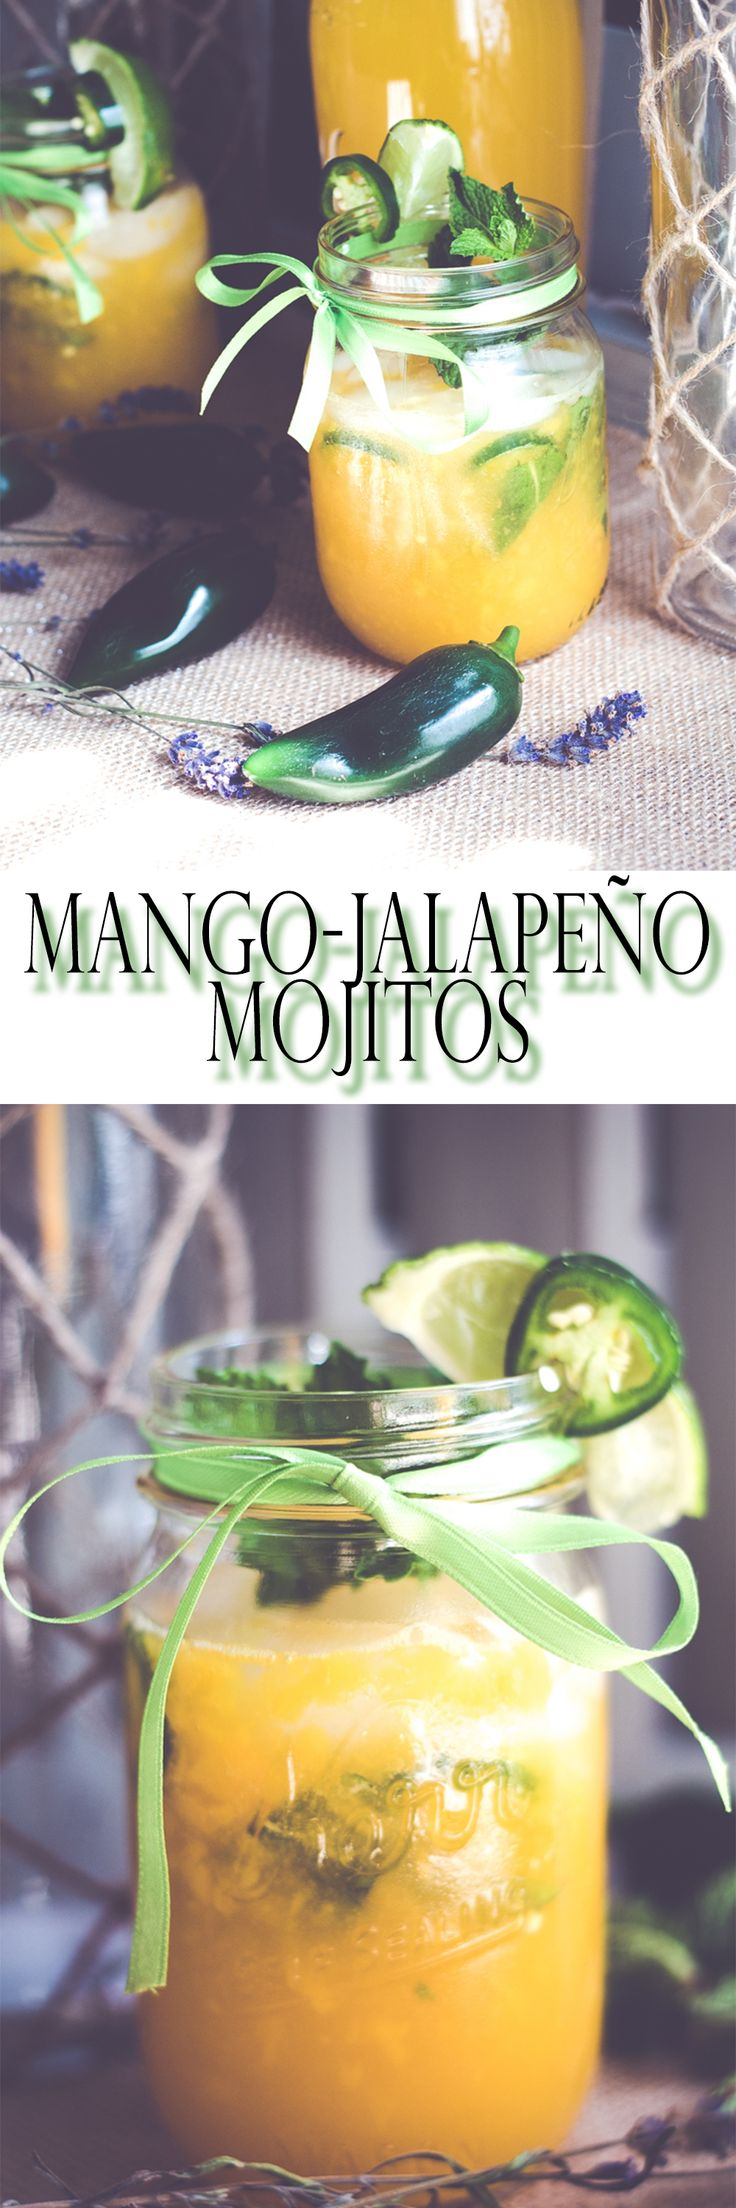 www.beingmelody.com | Jalapeno-Mango Mojito is the perfect cocktail for a party or drinks after work. | http://www.beingmelody.com